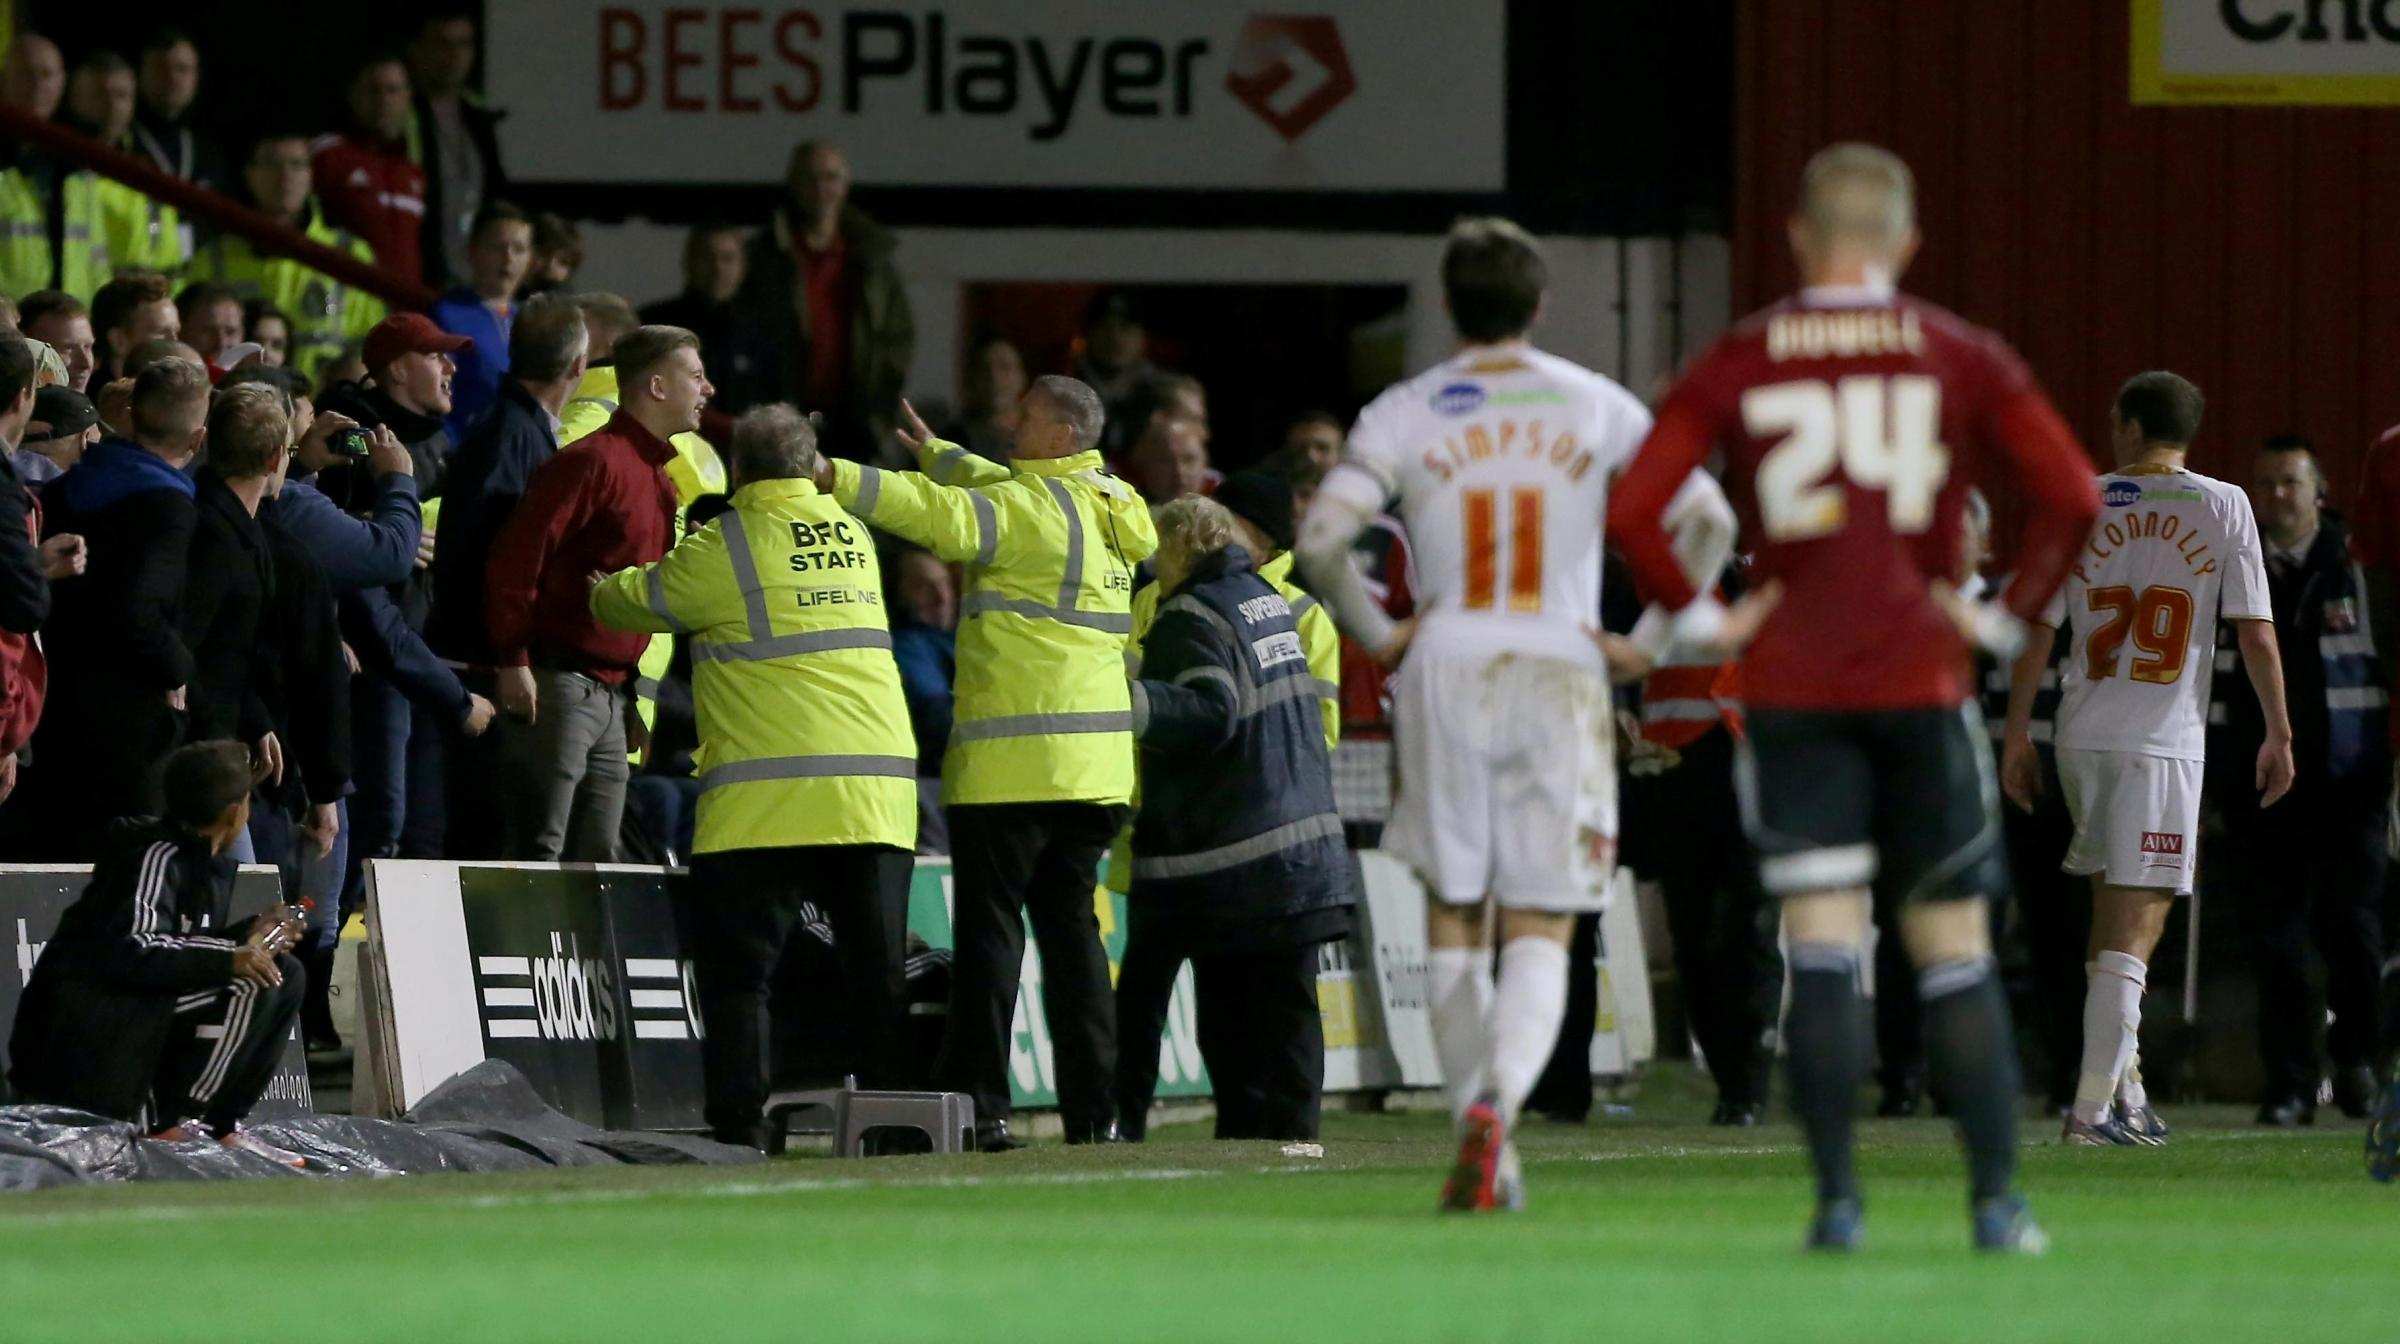 Paul Connolly, far right, walks away from the incident at Griffin Park